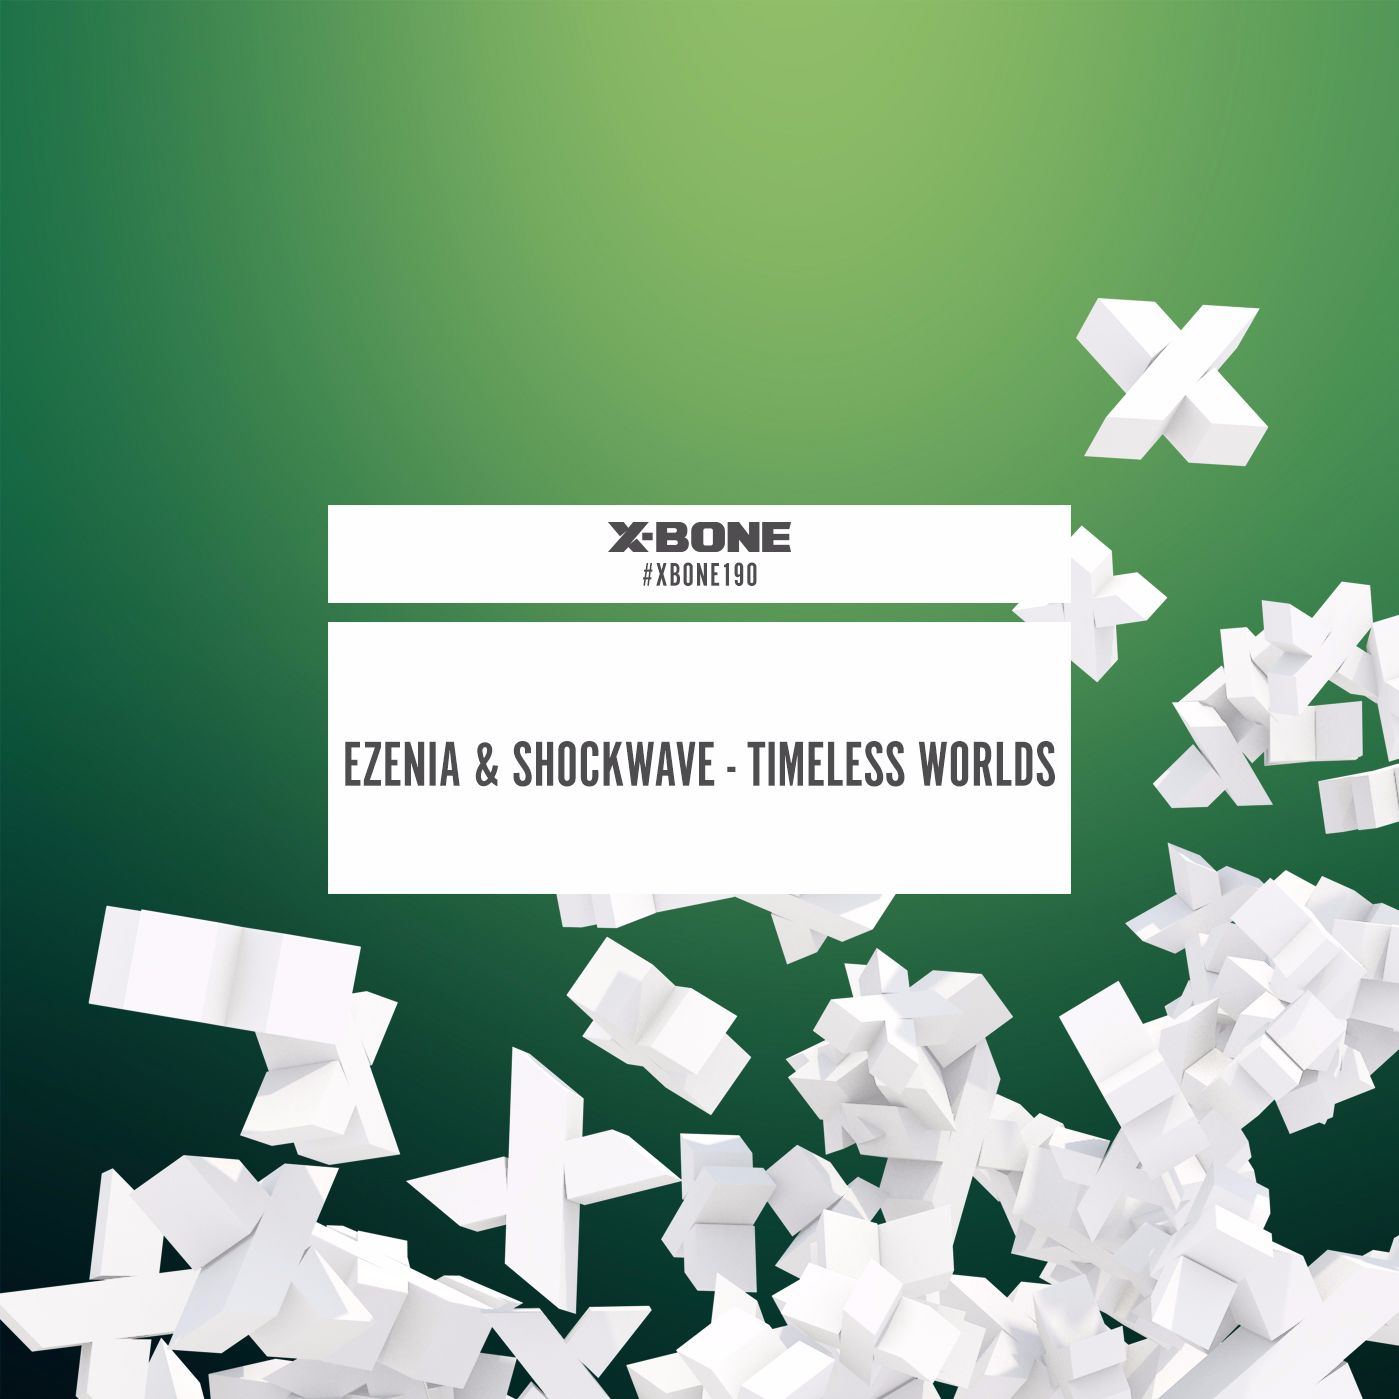 Ezenia & Shockwave - Timeless Words [X-BONE RECORDS] XBONE190